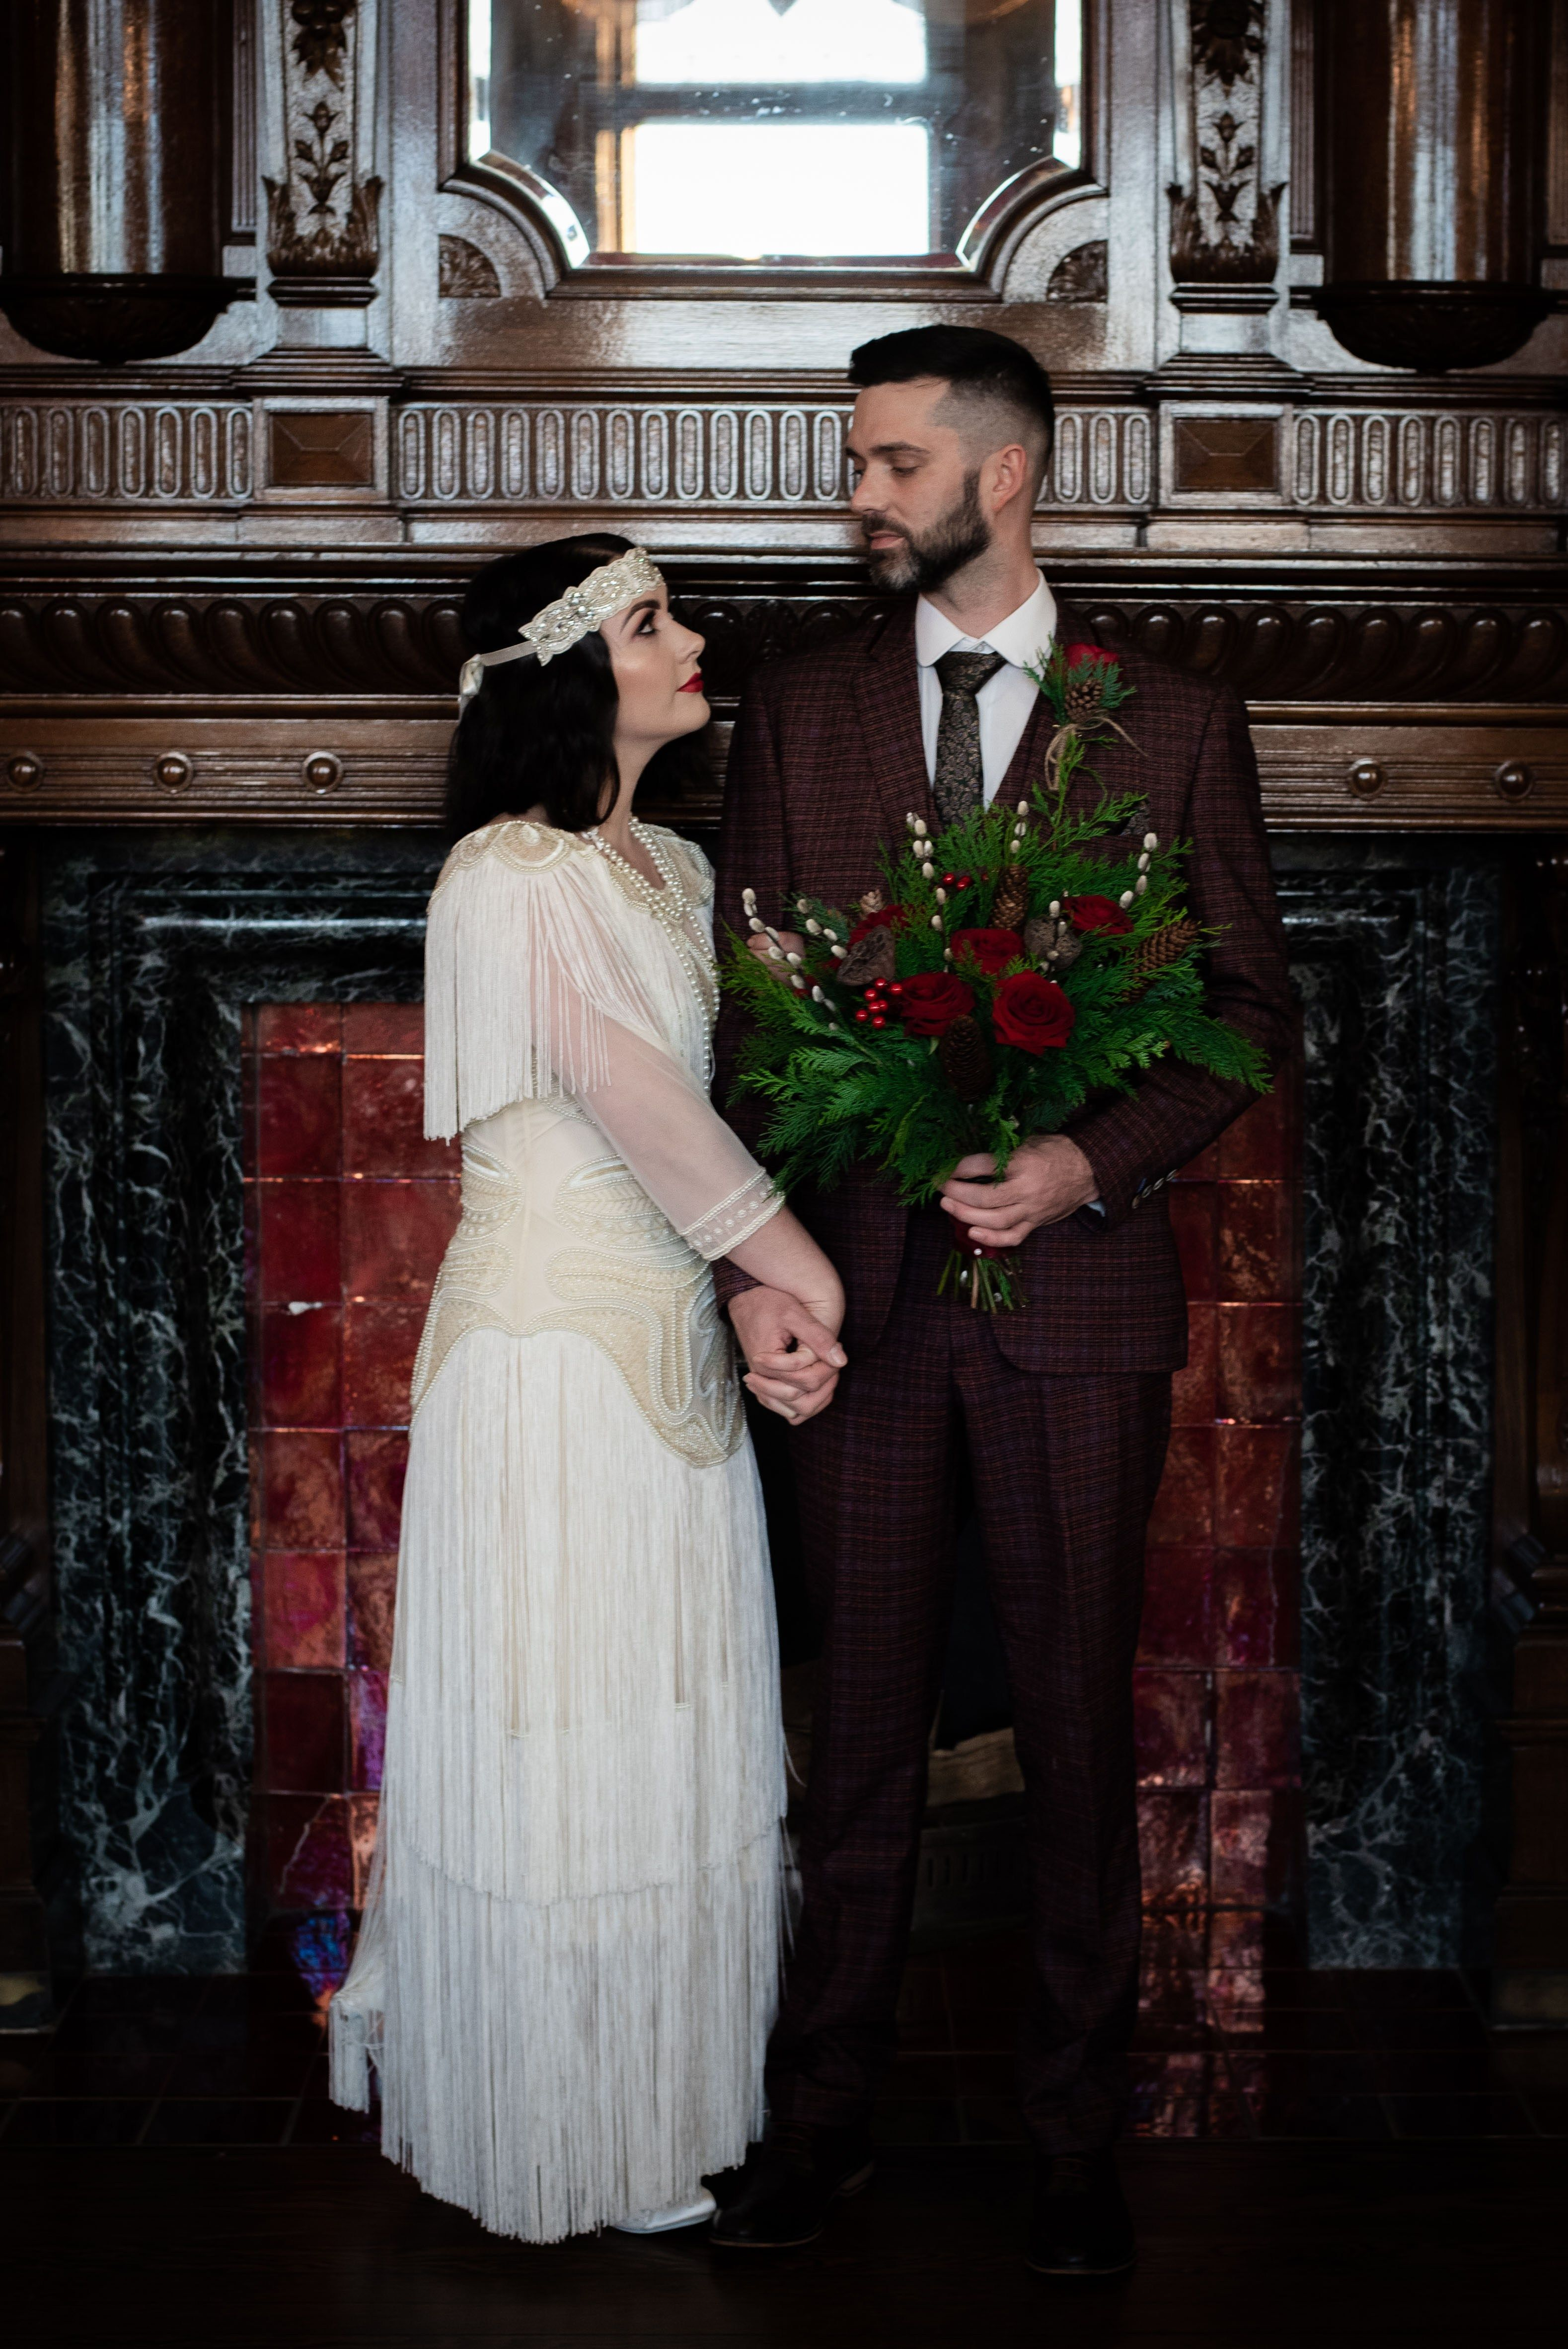 99fc2697fbe 1920 s Christmas Wedding - Peaky Blinders meets Gatsby Glamour 1920 s wedding  inspiration by Magpie Wedding  1920 swedding  weddinginspo  vintagewedding  ...